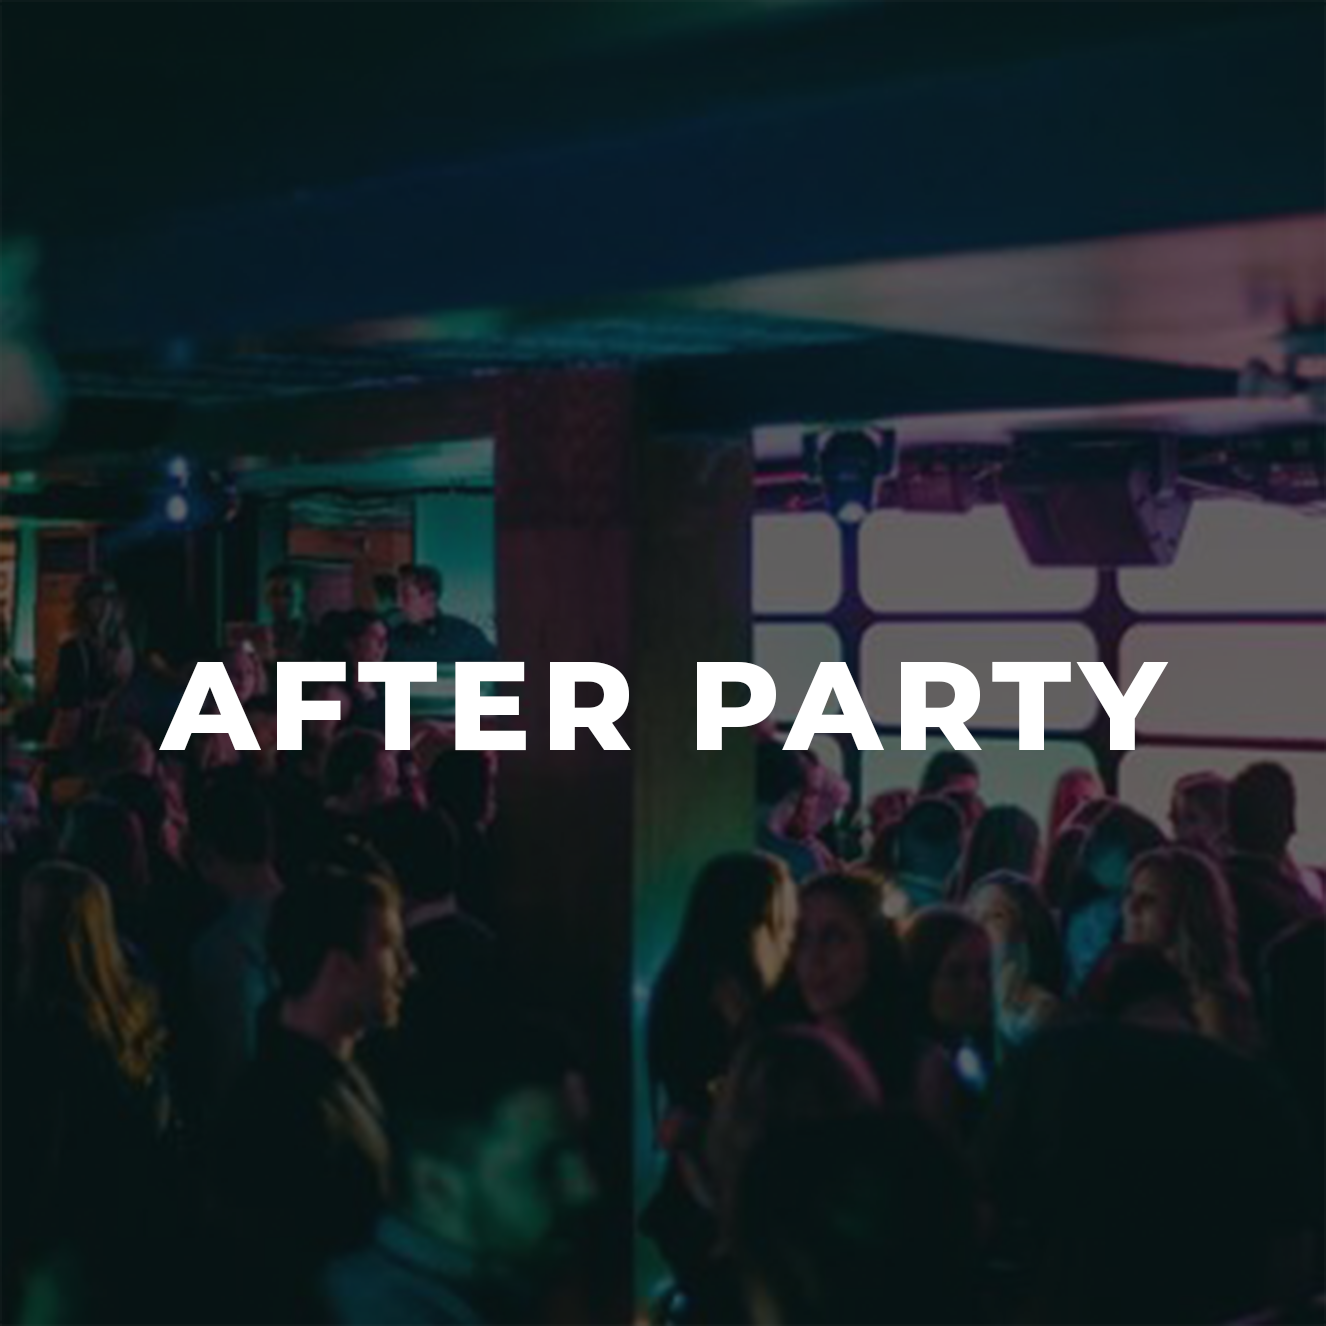 End the two-day conference with a bang. Join us at the Legacy after-party where you will receive free entry, drink specials and good music as a Legacy attendee.